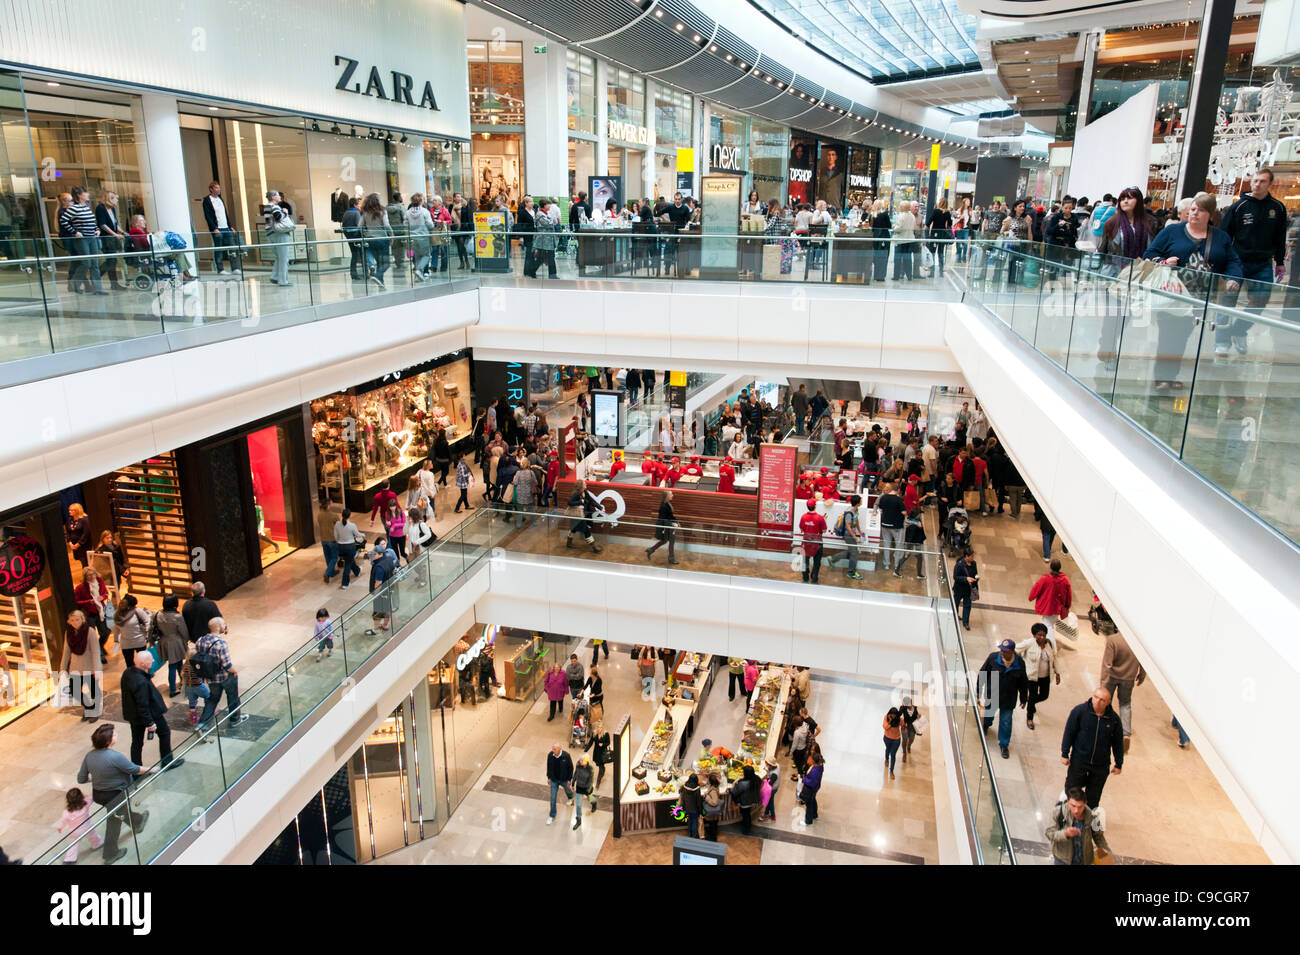 Westfield Stratford City shopping mall, London, England, UK - Stock Image